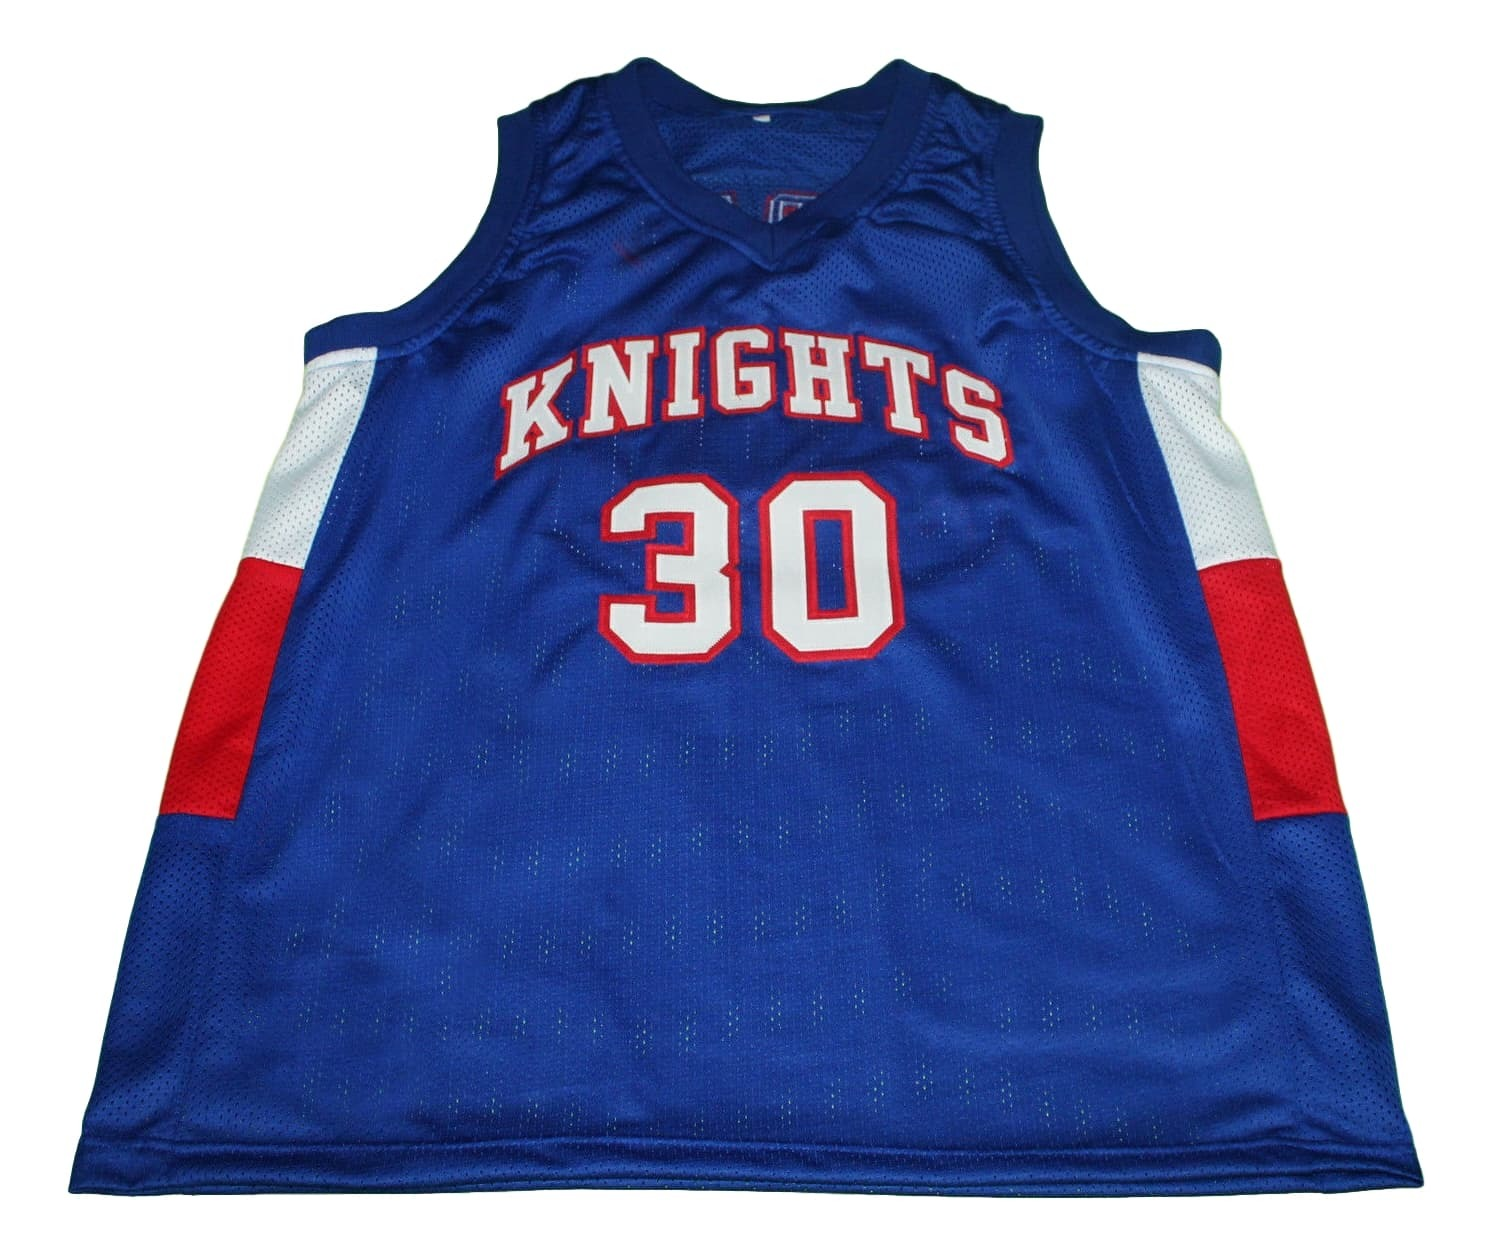 Stephen Curry #30 Knights High School New Men Basketball Jersey Blue Any Size